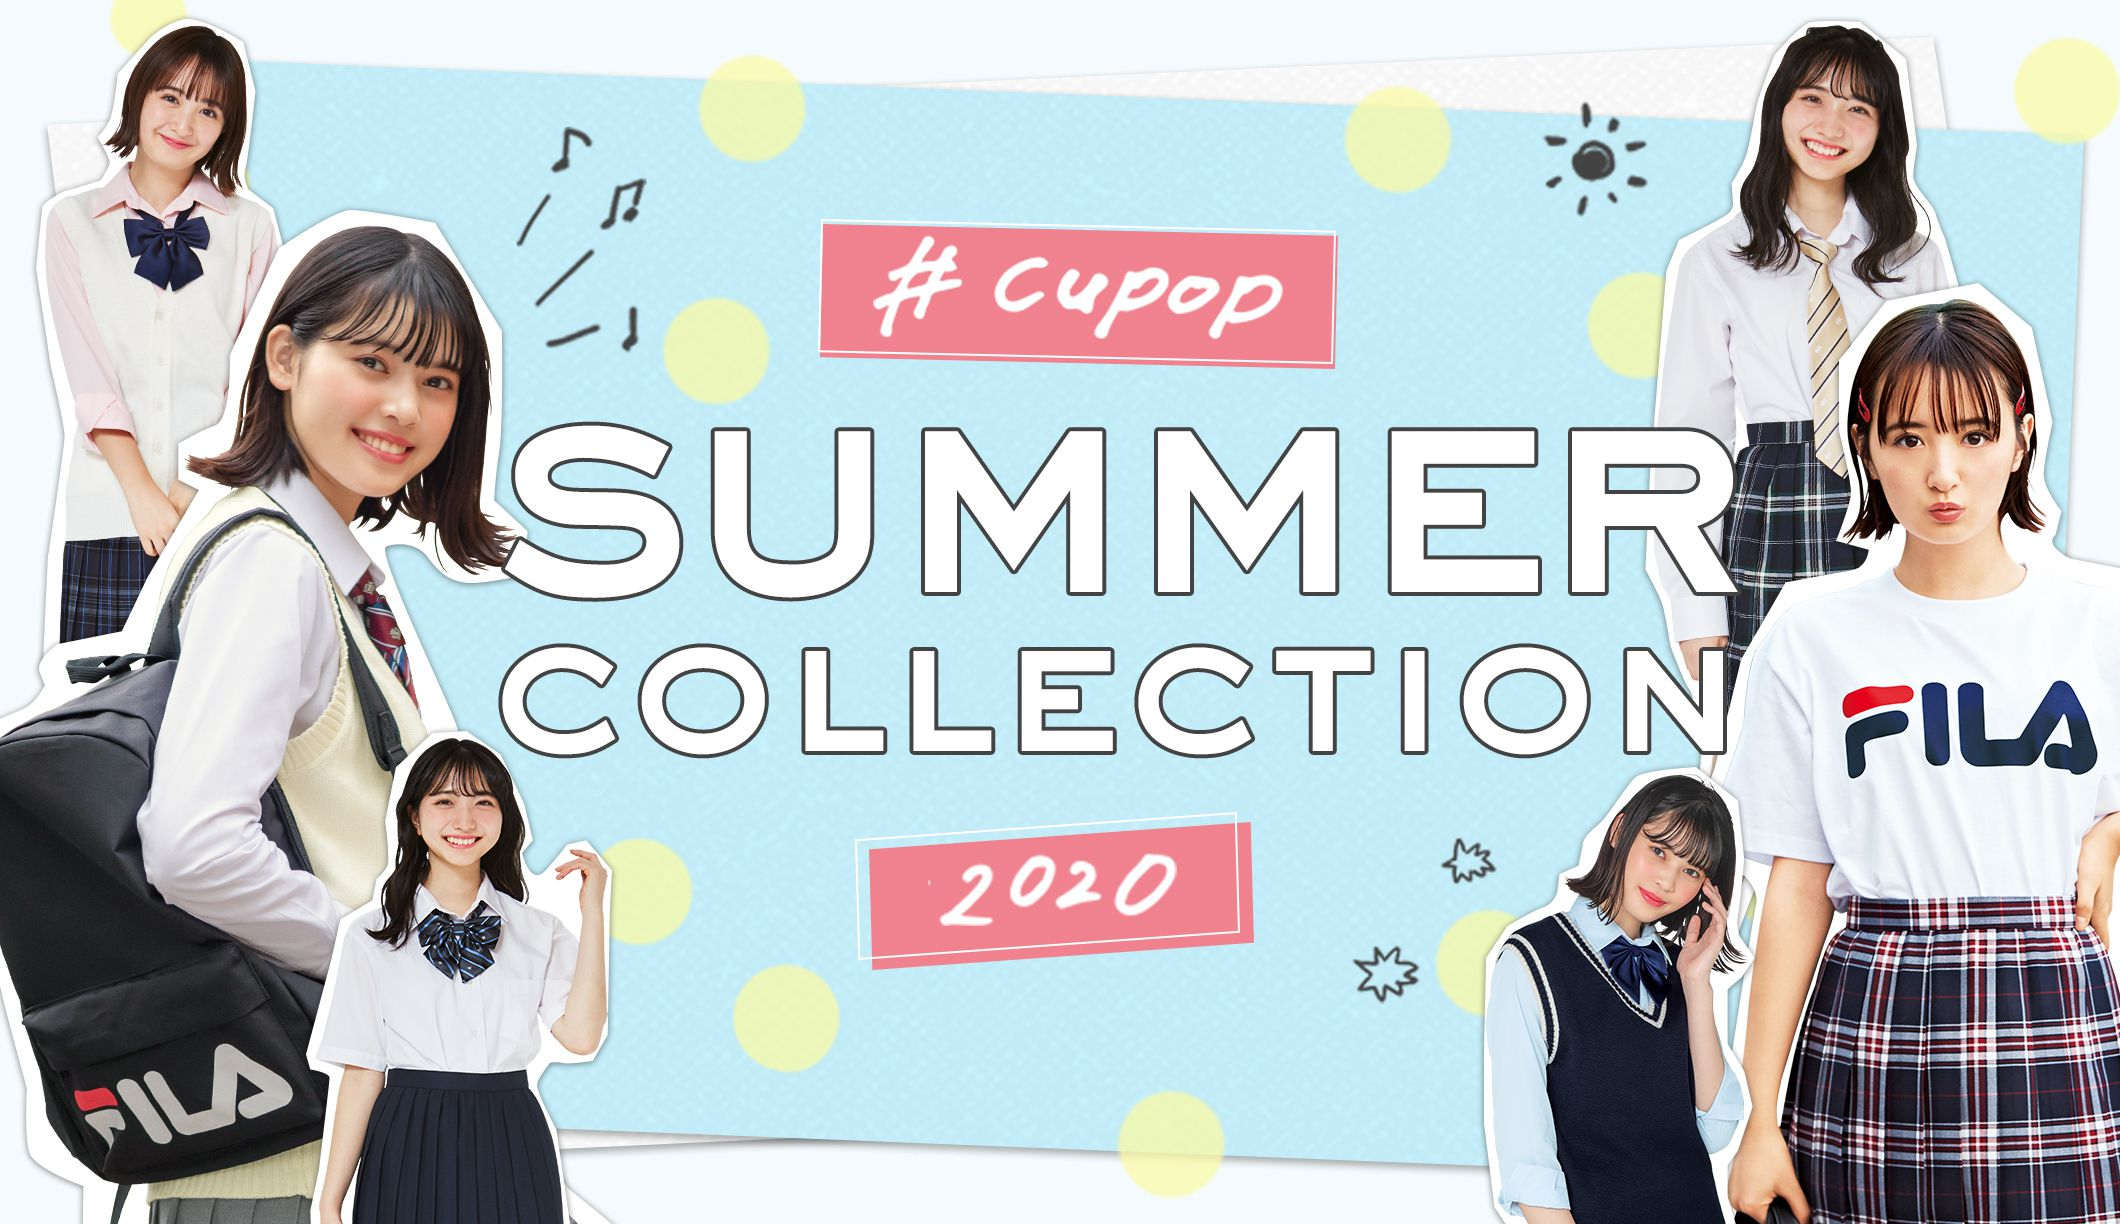 Cupop SUMMER COLLECTION